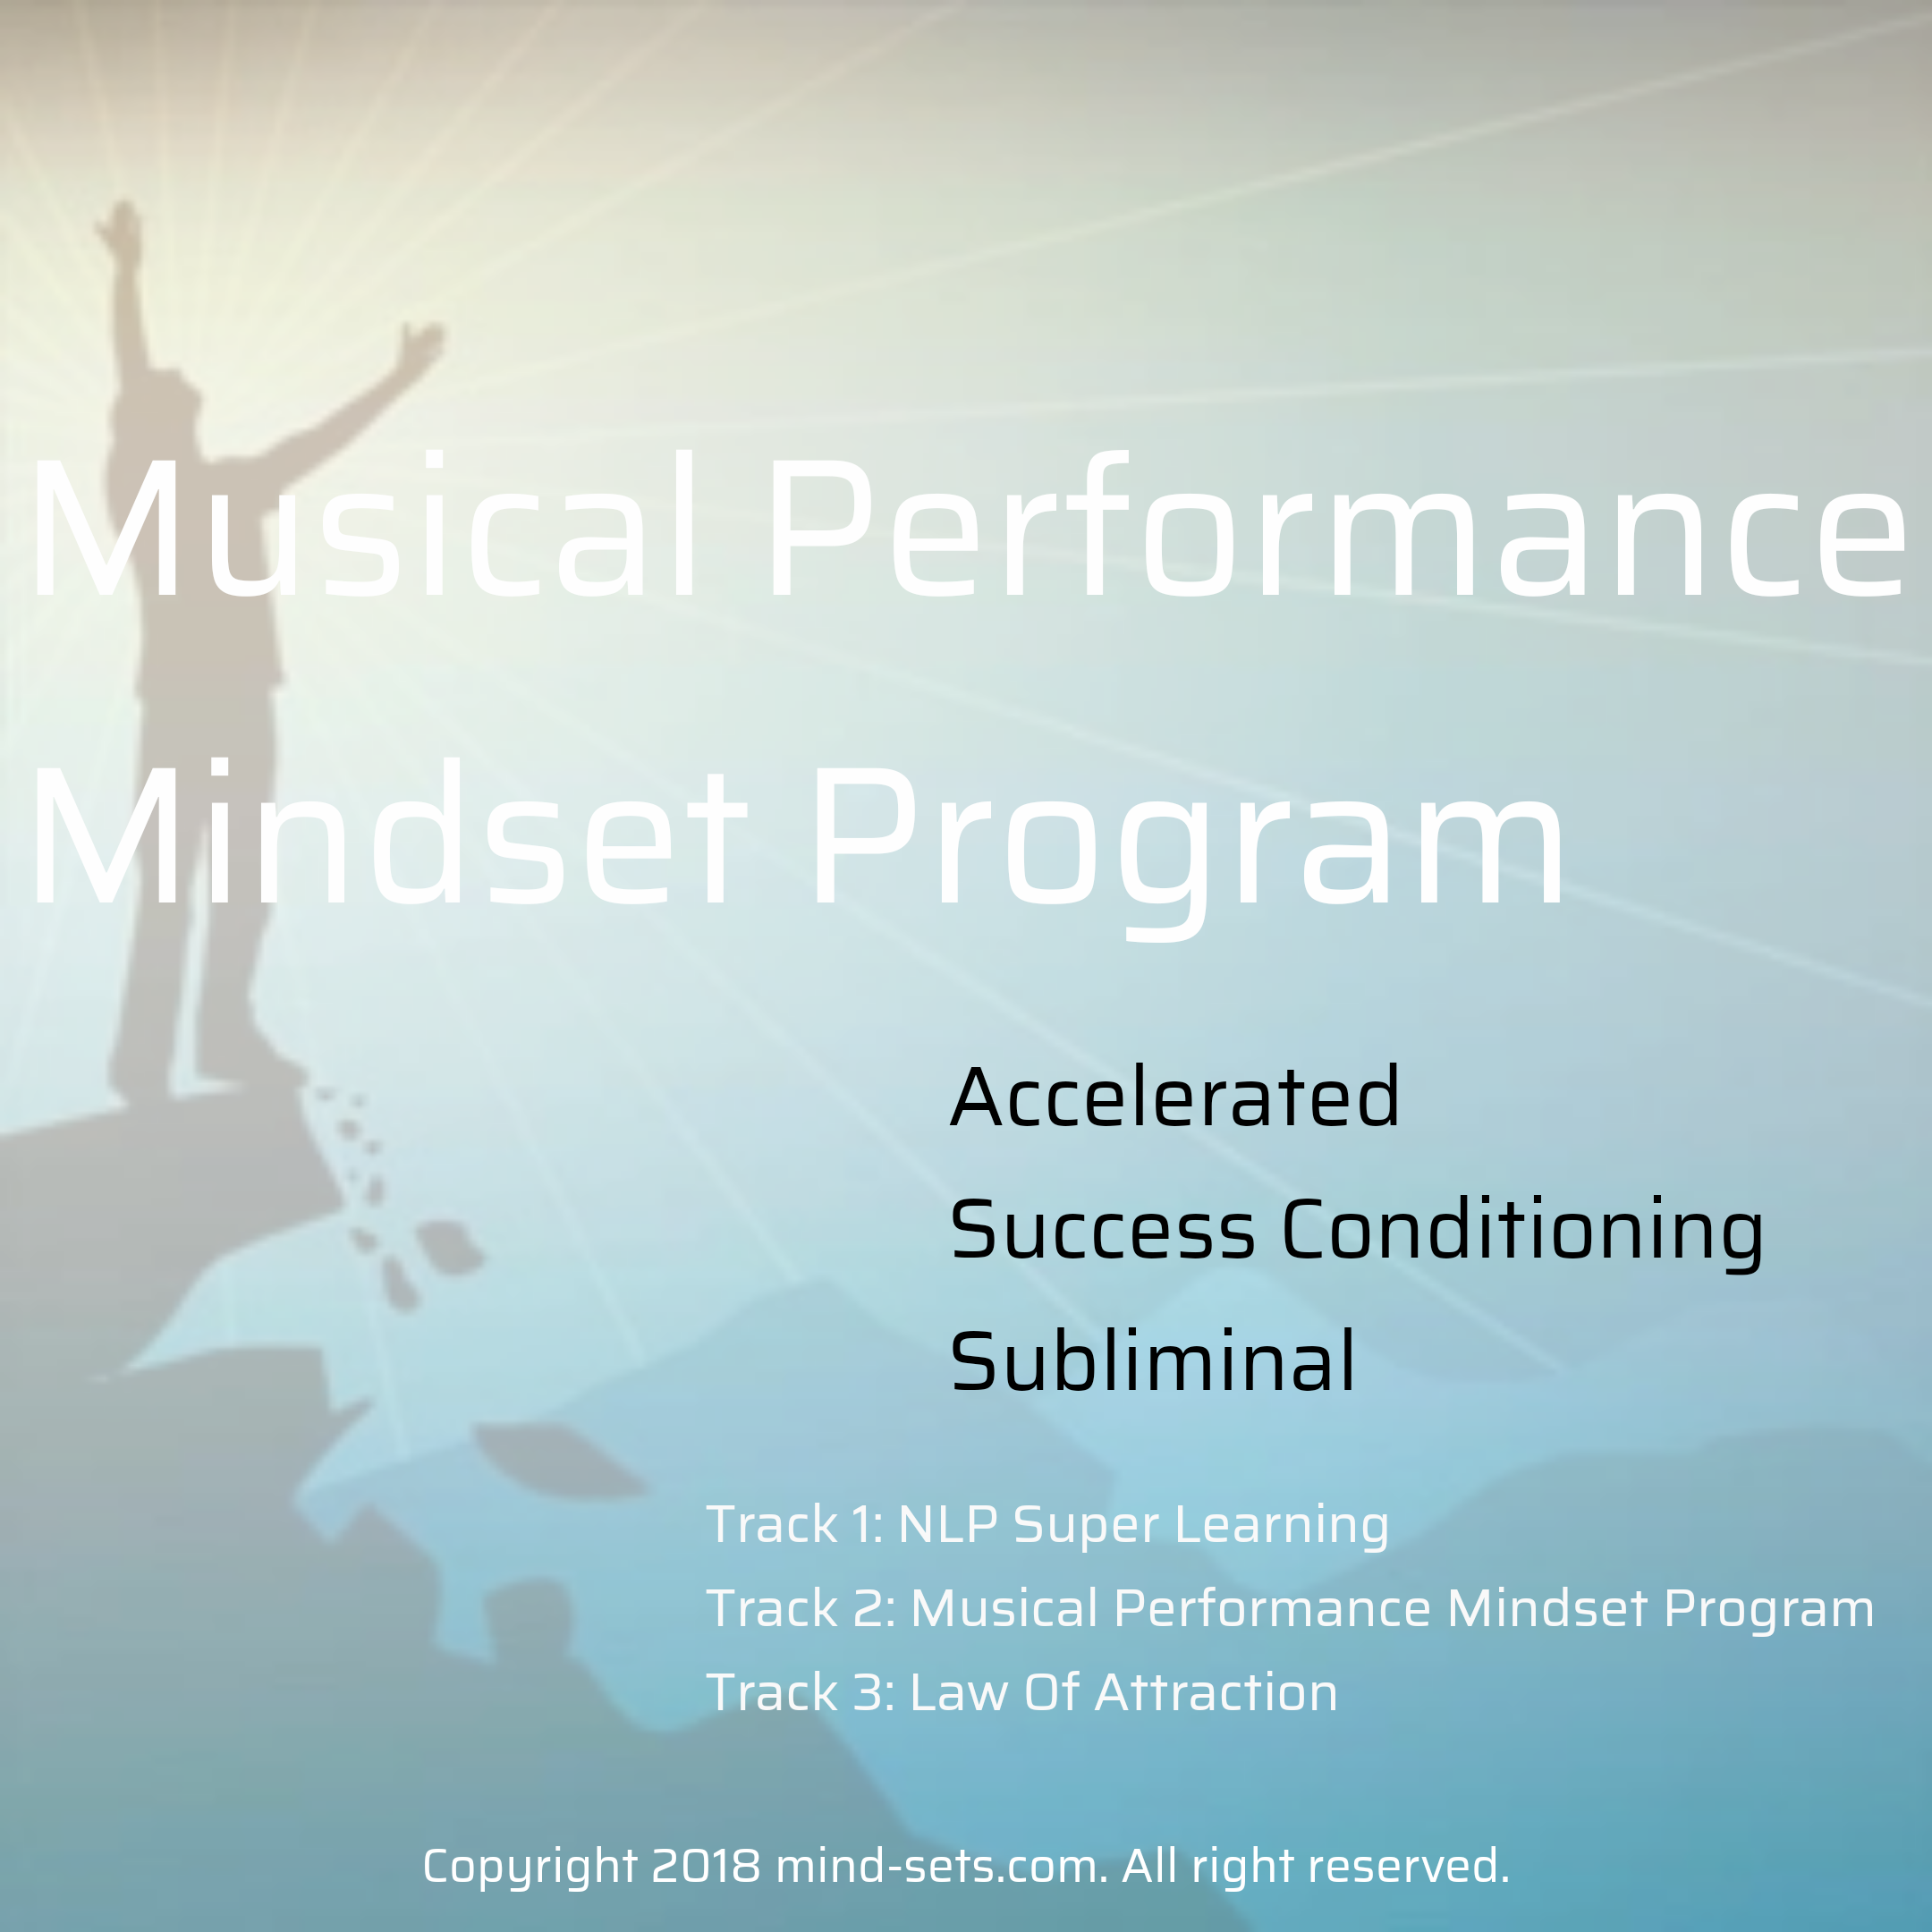 Musical Performance Mindset Program